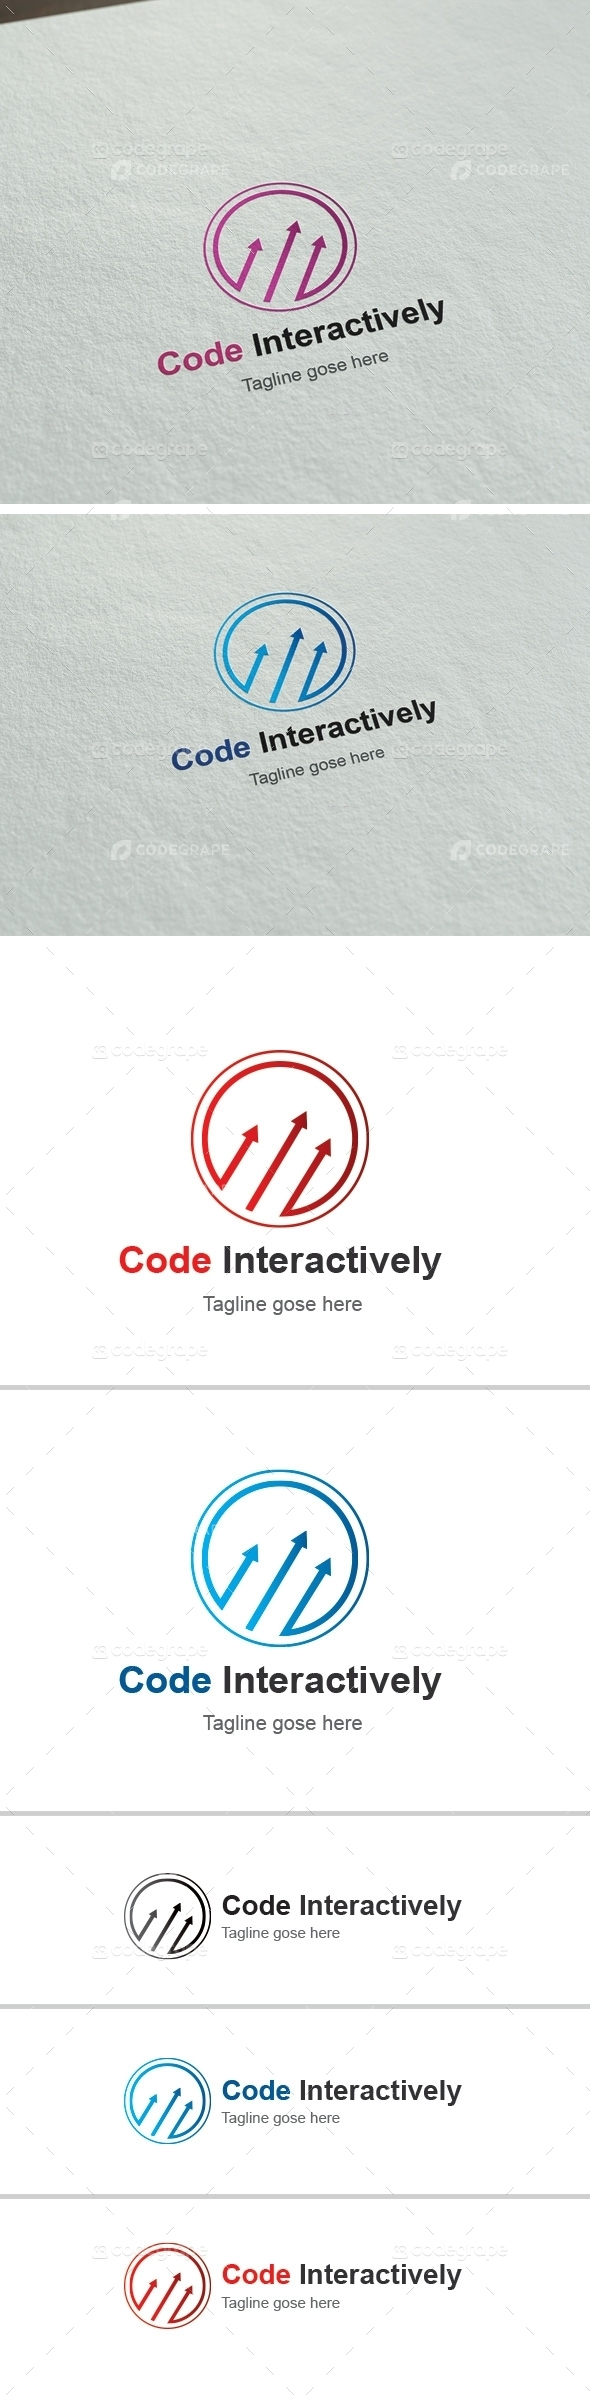 Code Interactively Business Logo